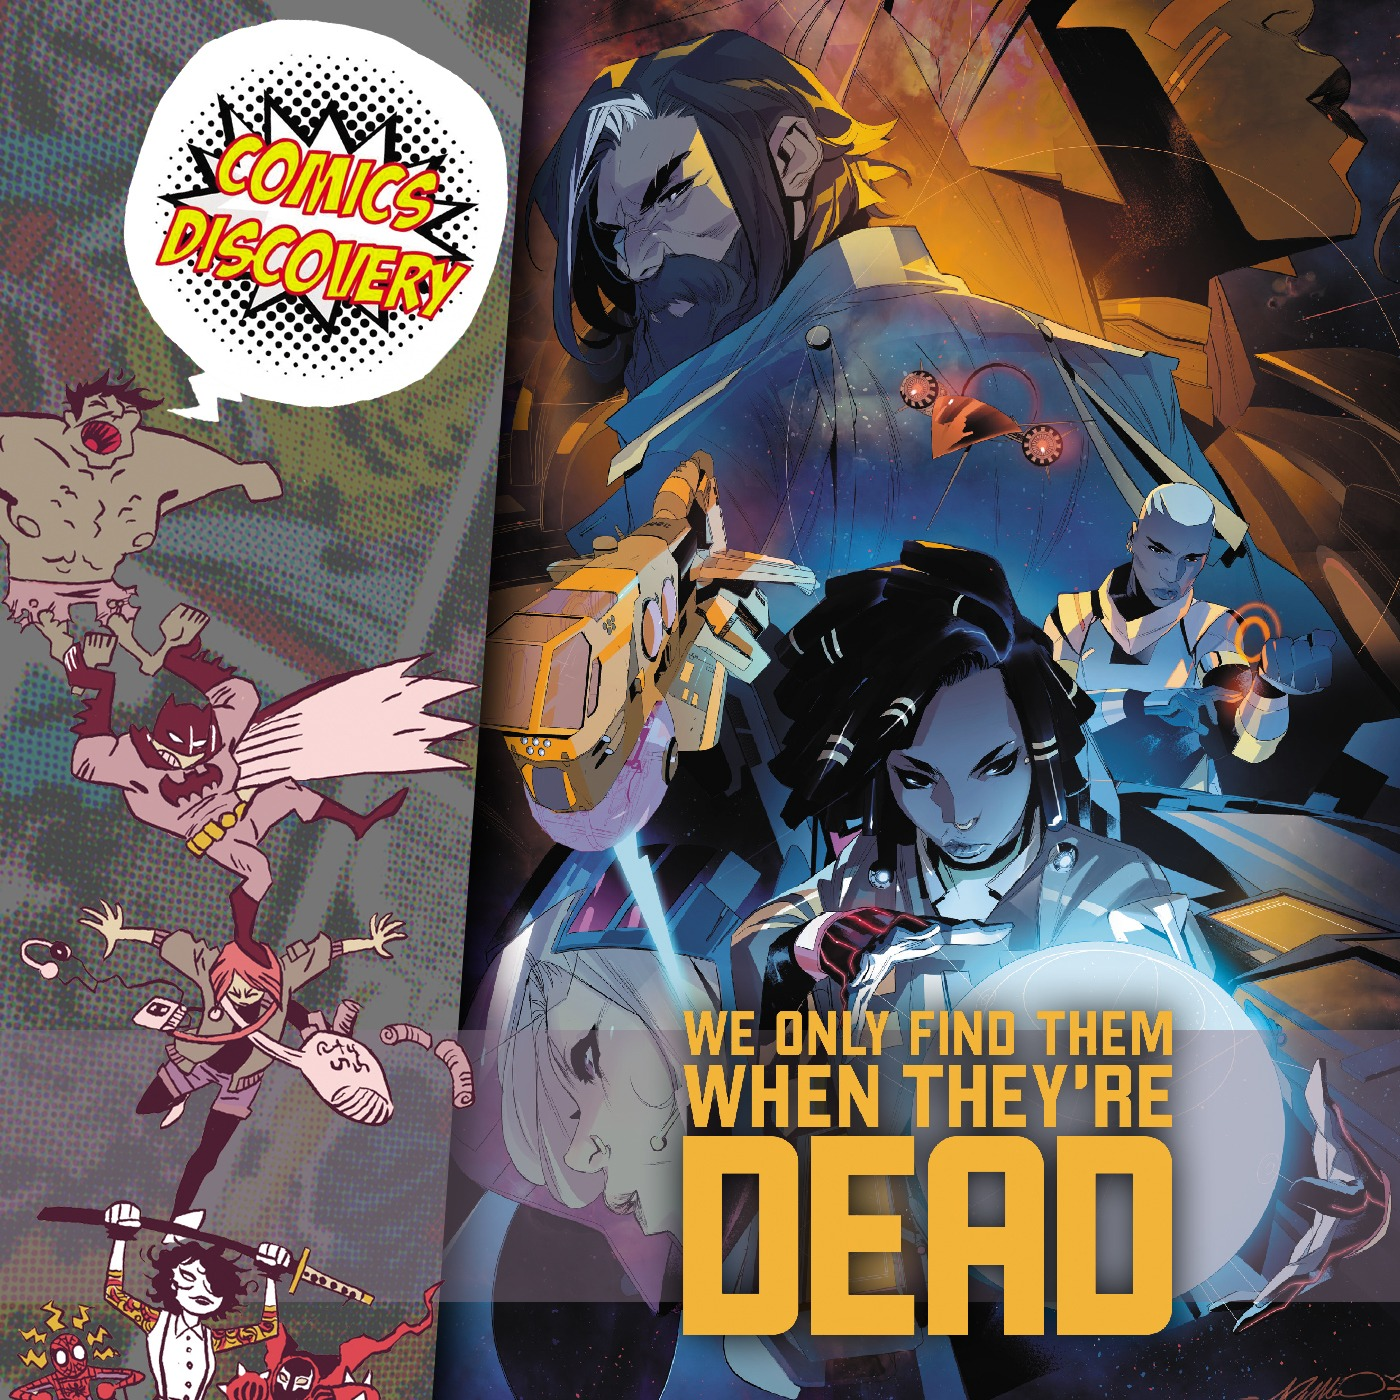 ComicsDiscovery S05E42 : We only find them when 're dead